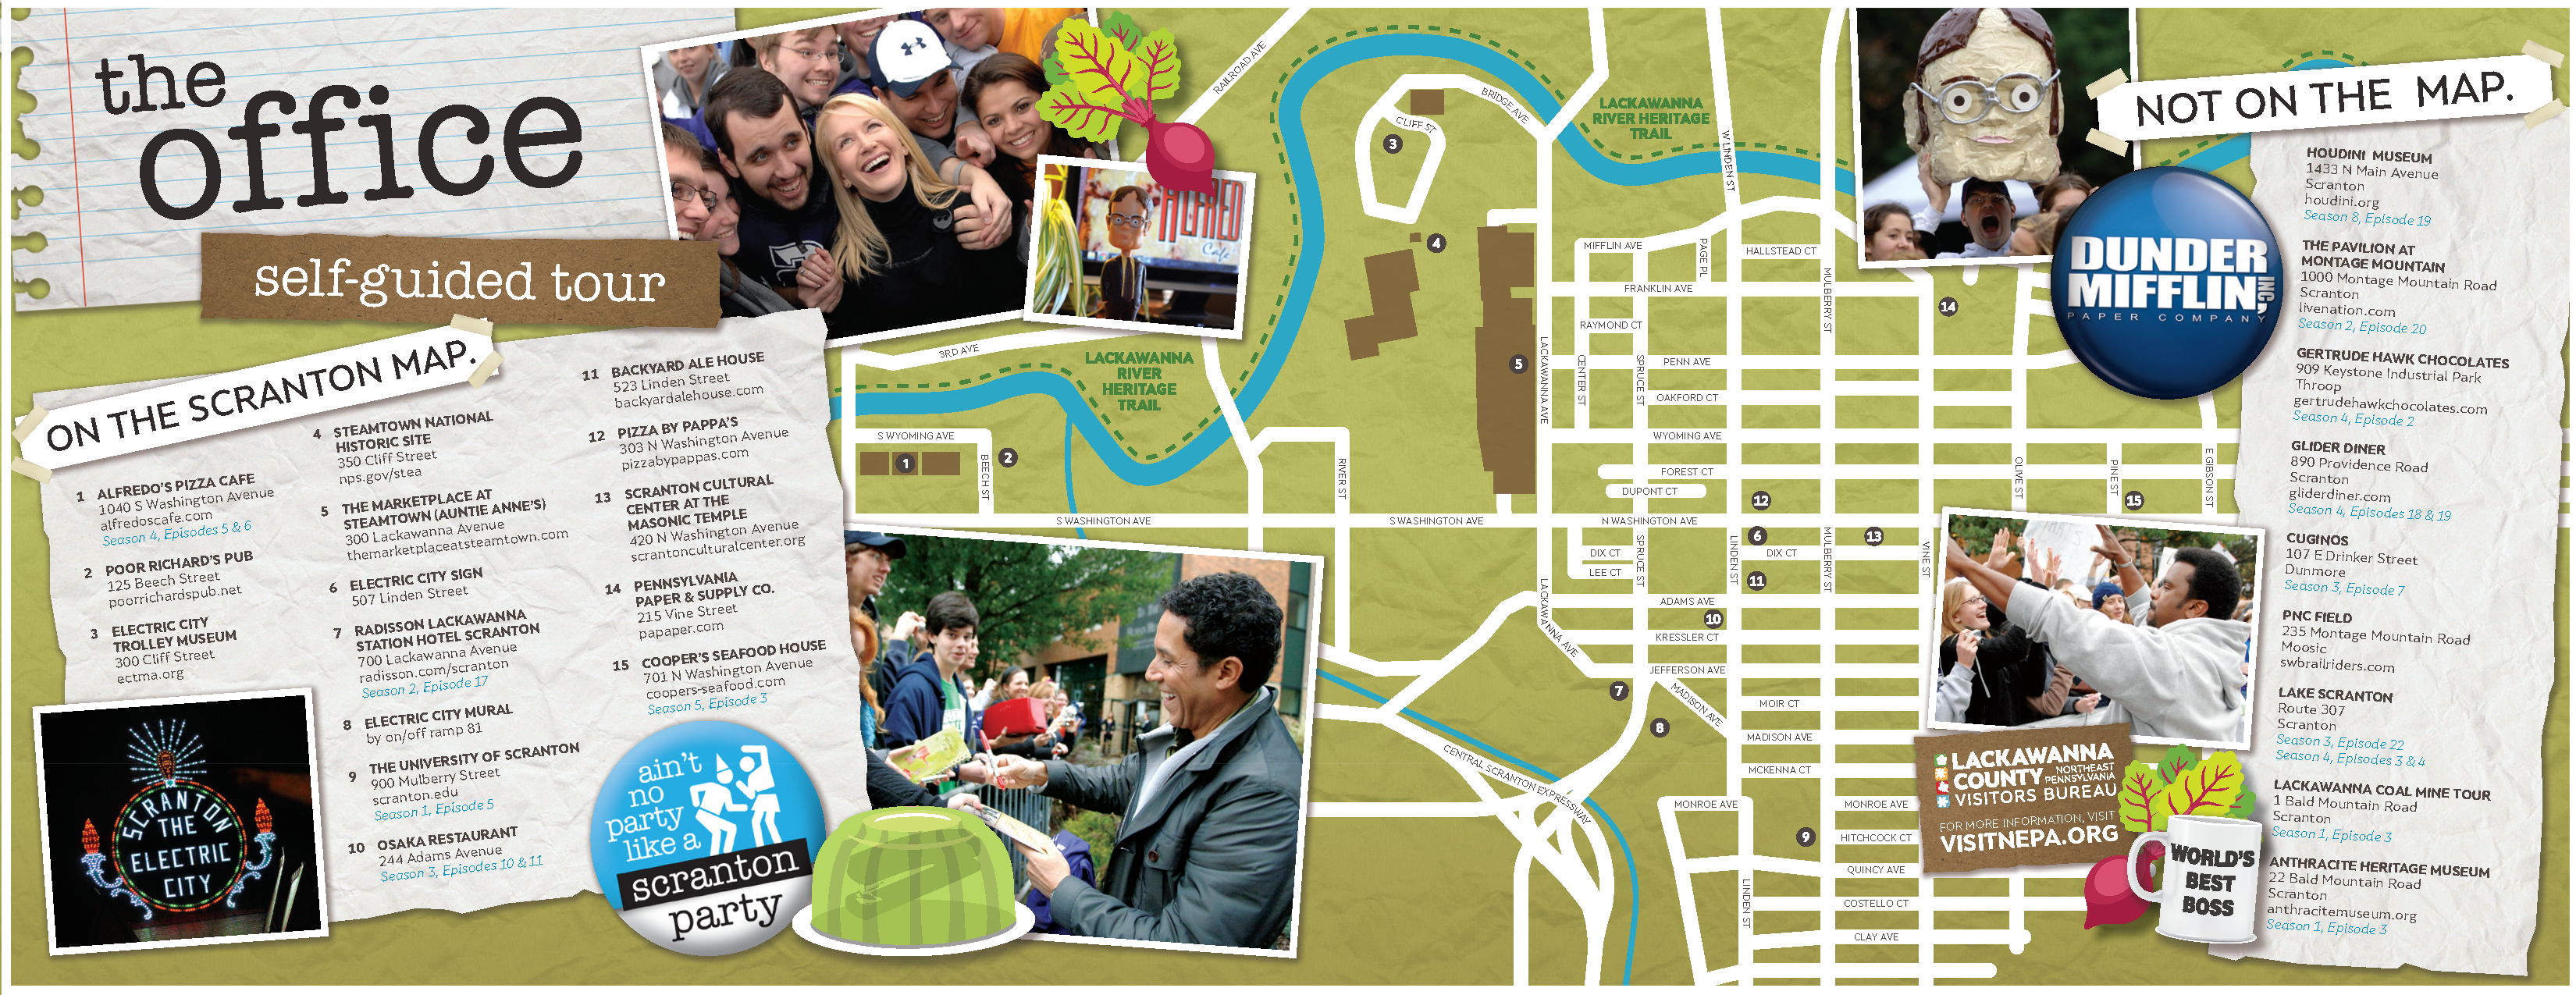 The Office Self-Guided Walking Tour Map